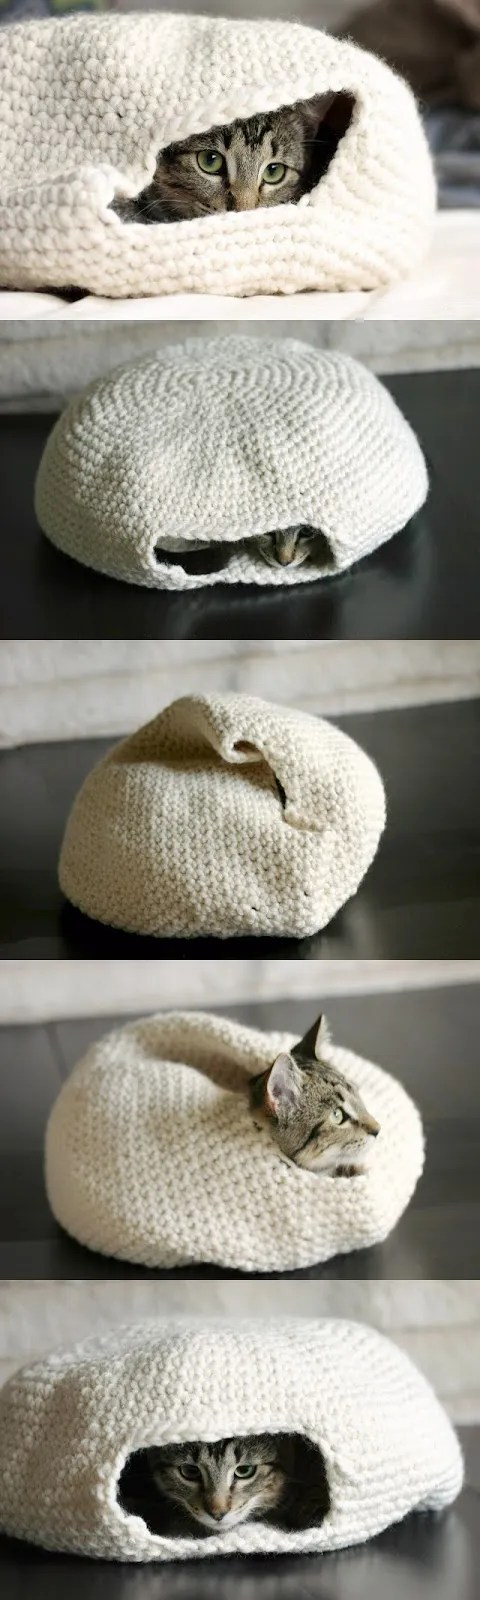 crochet cat bed (2)